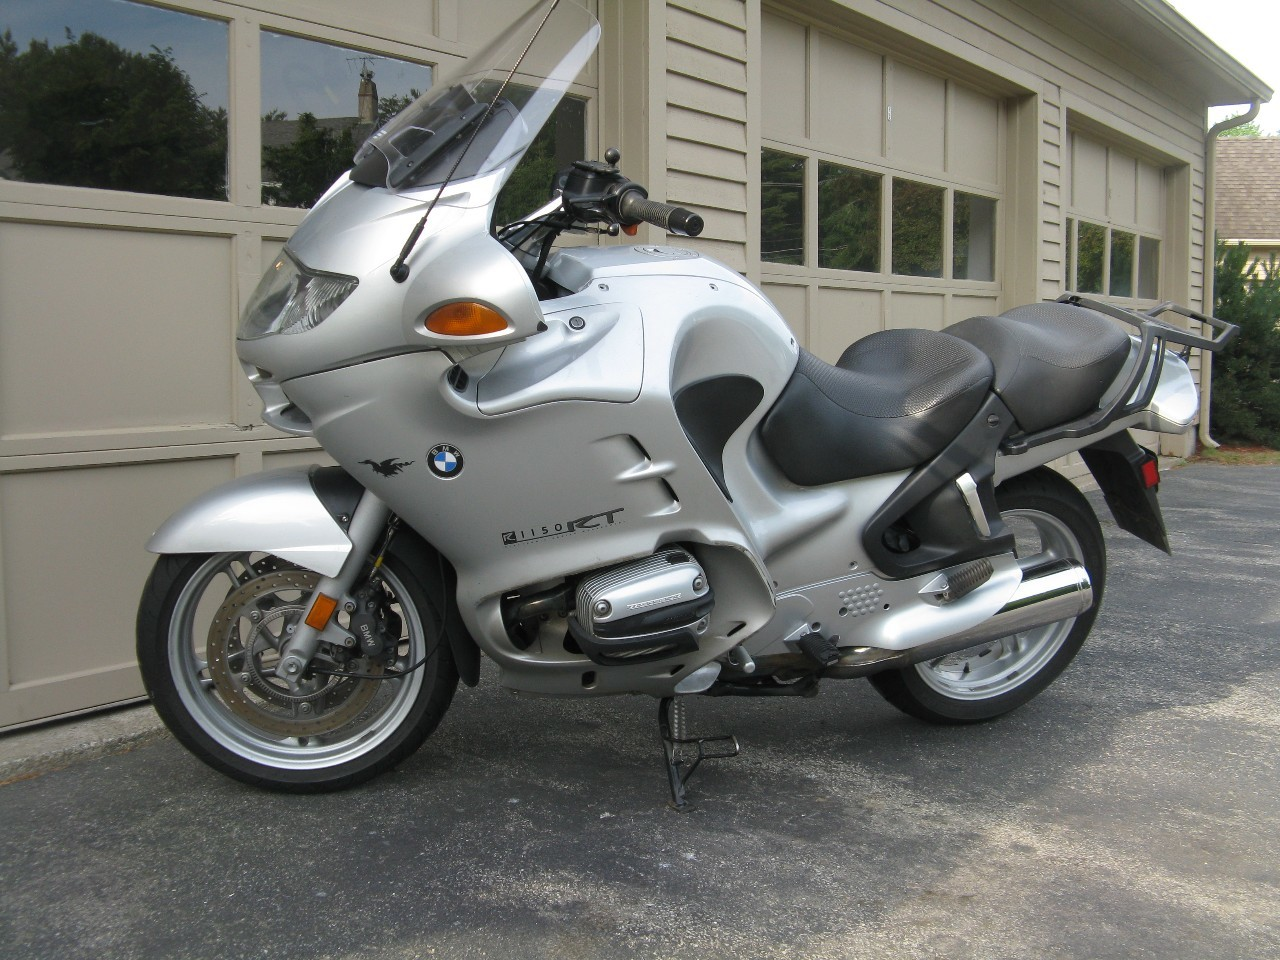 bmw r1200gs adventure jessie luggage for sale 103 pwcs